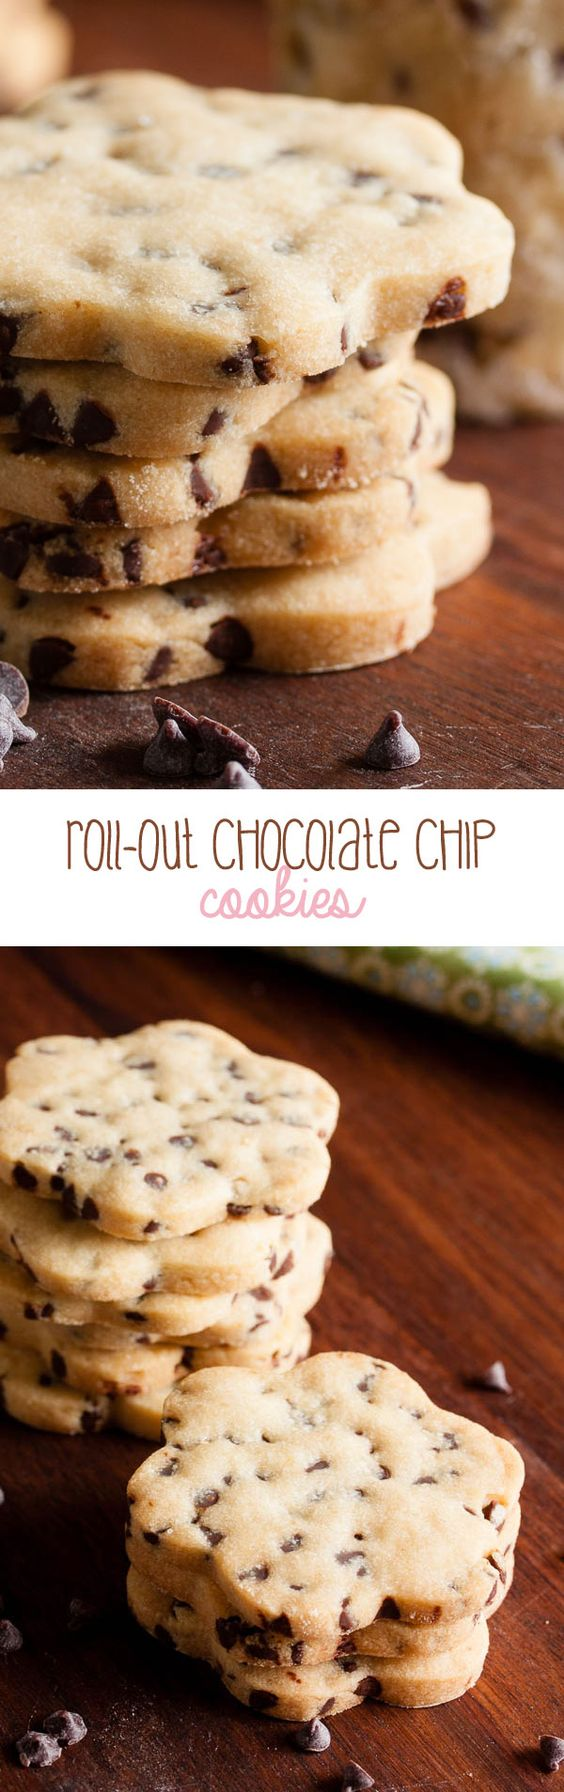 These roll-out chocolate chip cookies are soft and slightly crumbly, like a…